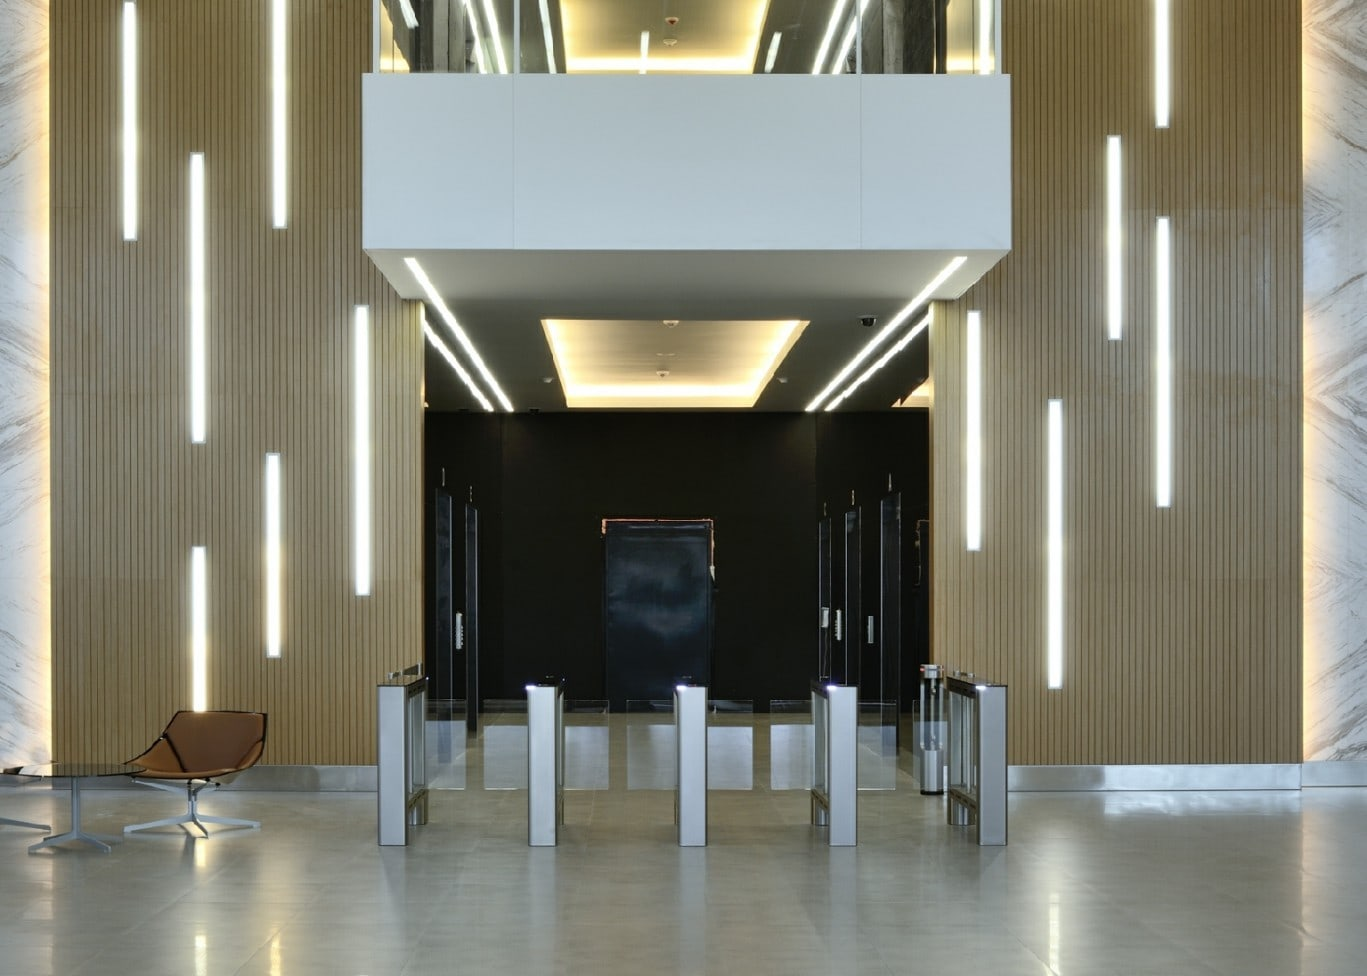 commercial lighting design: entrance way